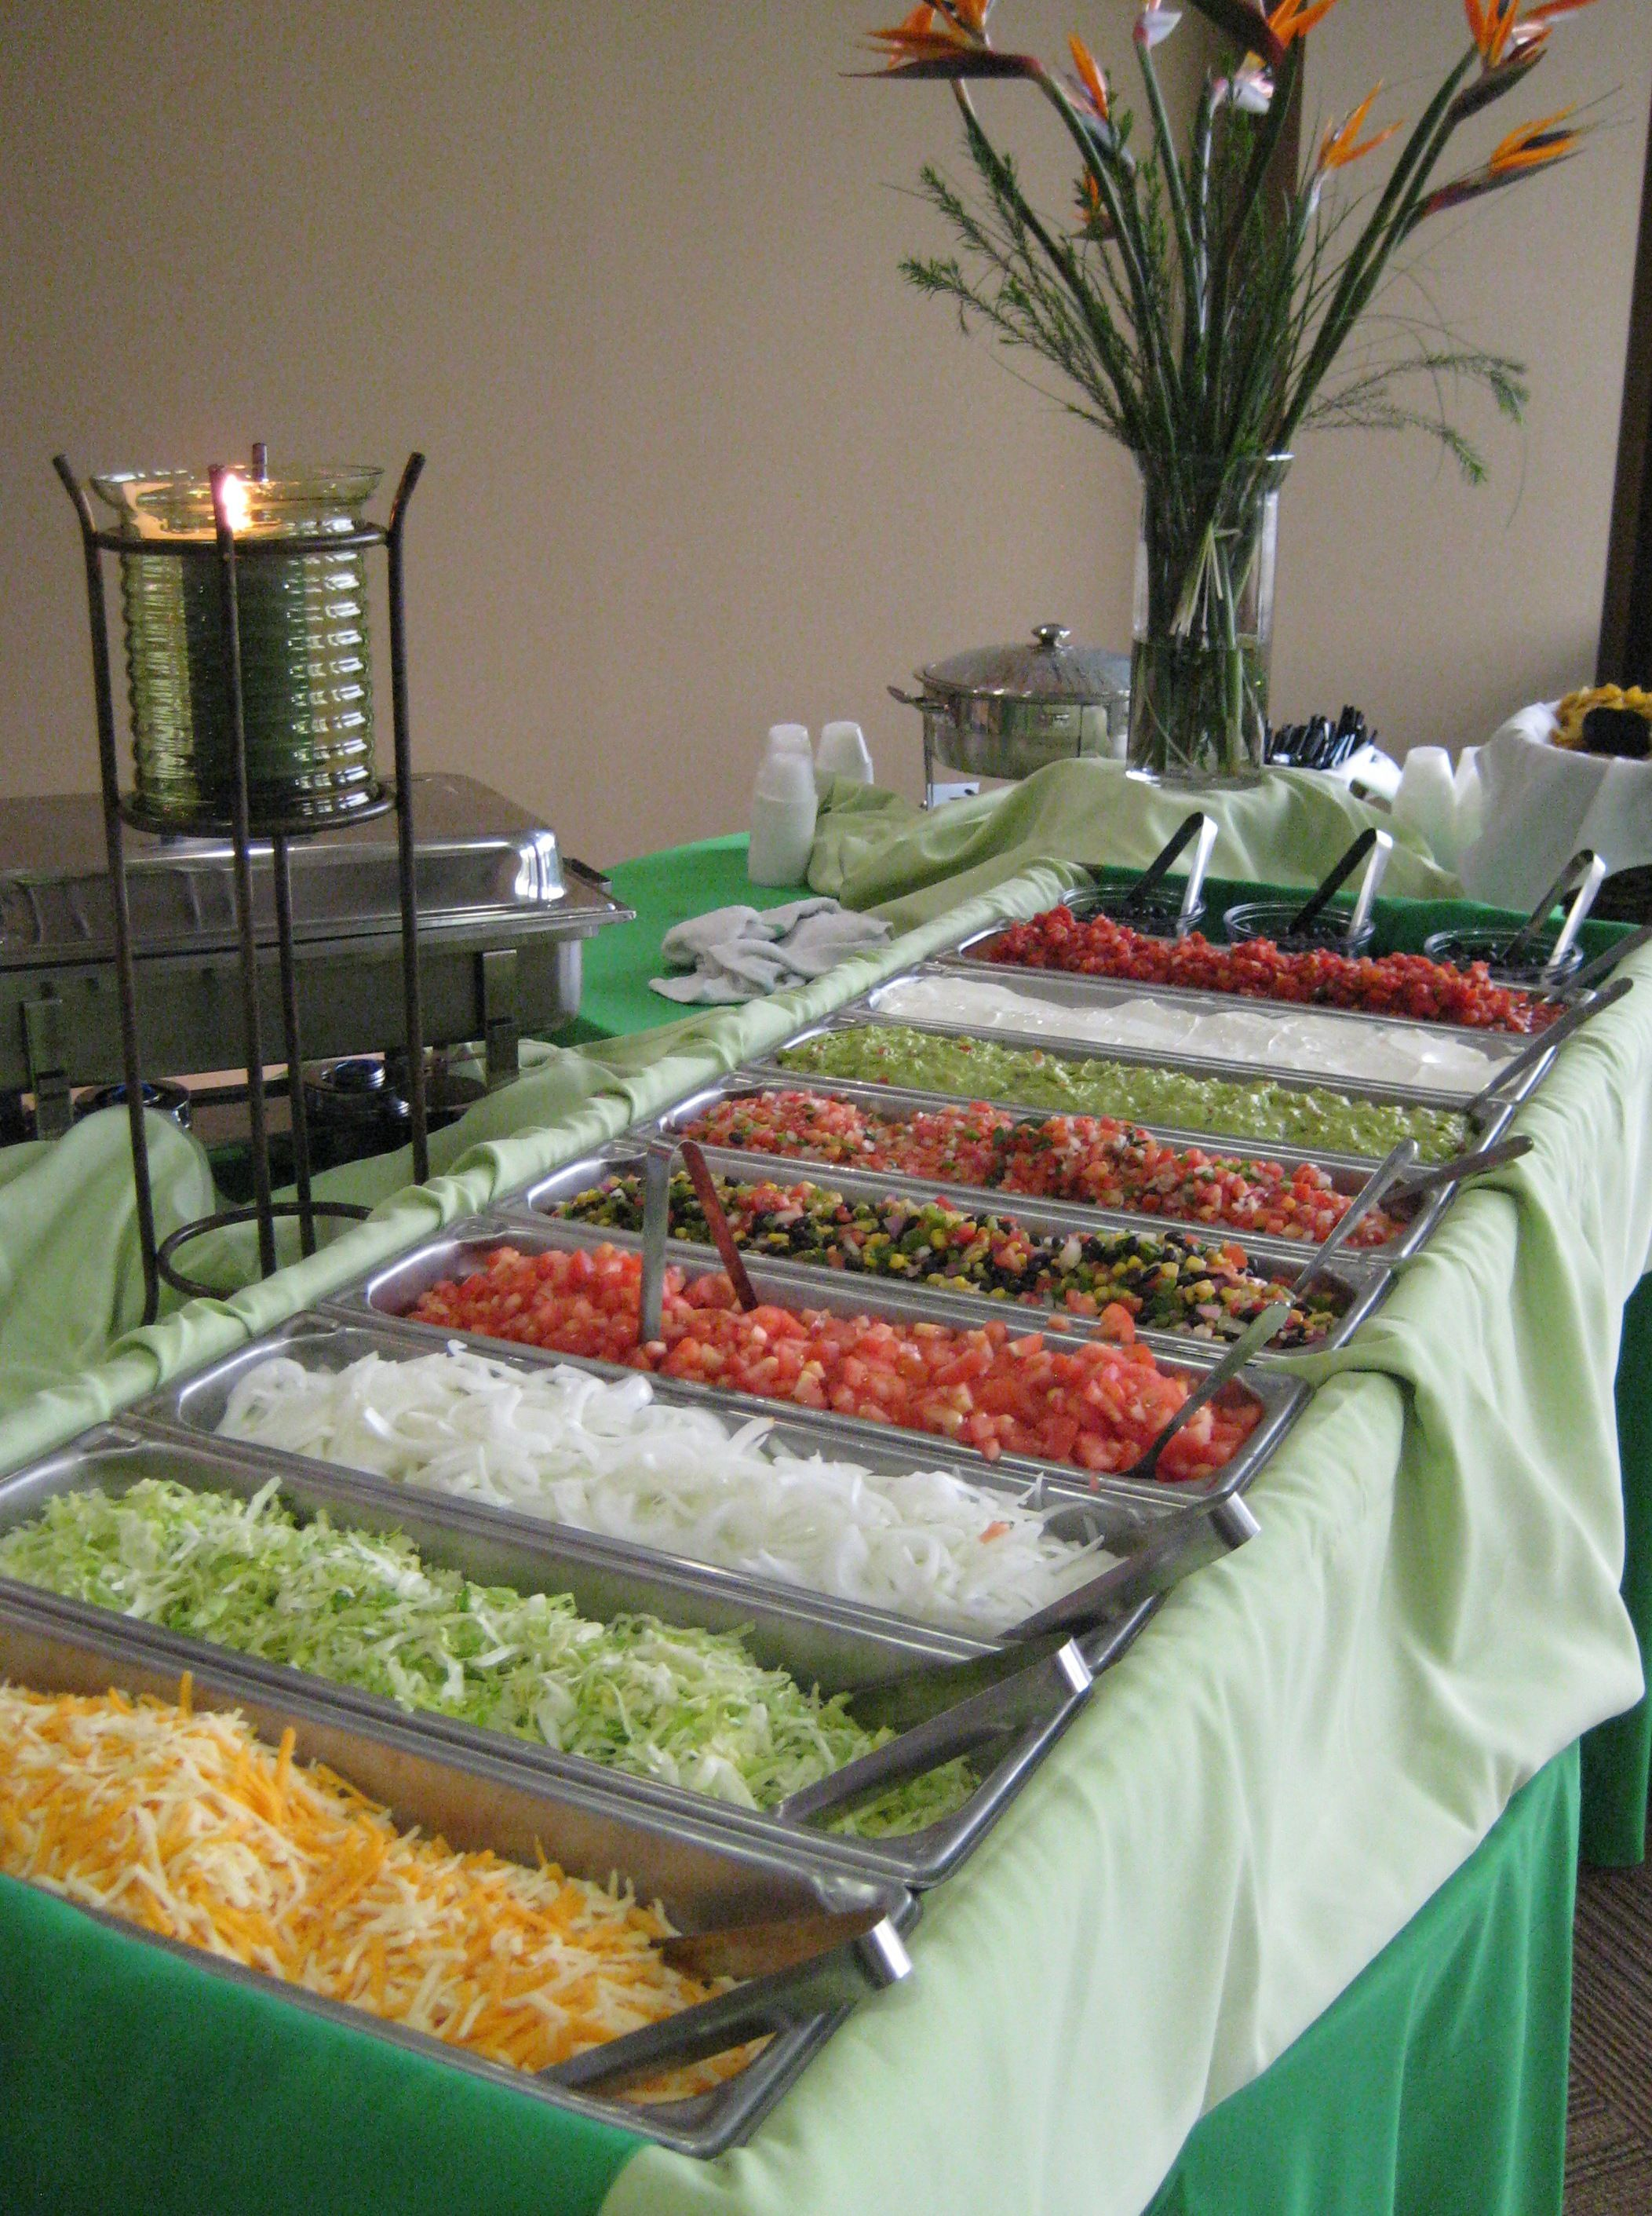 Wonderful Taco Dinner Party Ideas Part - 13: Neat Ideau2026Taco Bar For The Reception ~ Easy, Affordable, Yummy, And Fun!  Rods Idea For Food At The Reception.